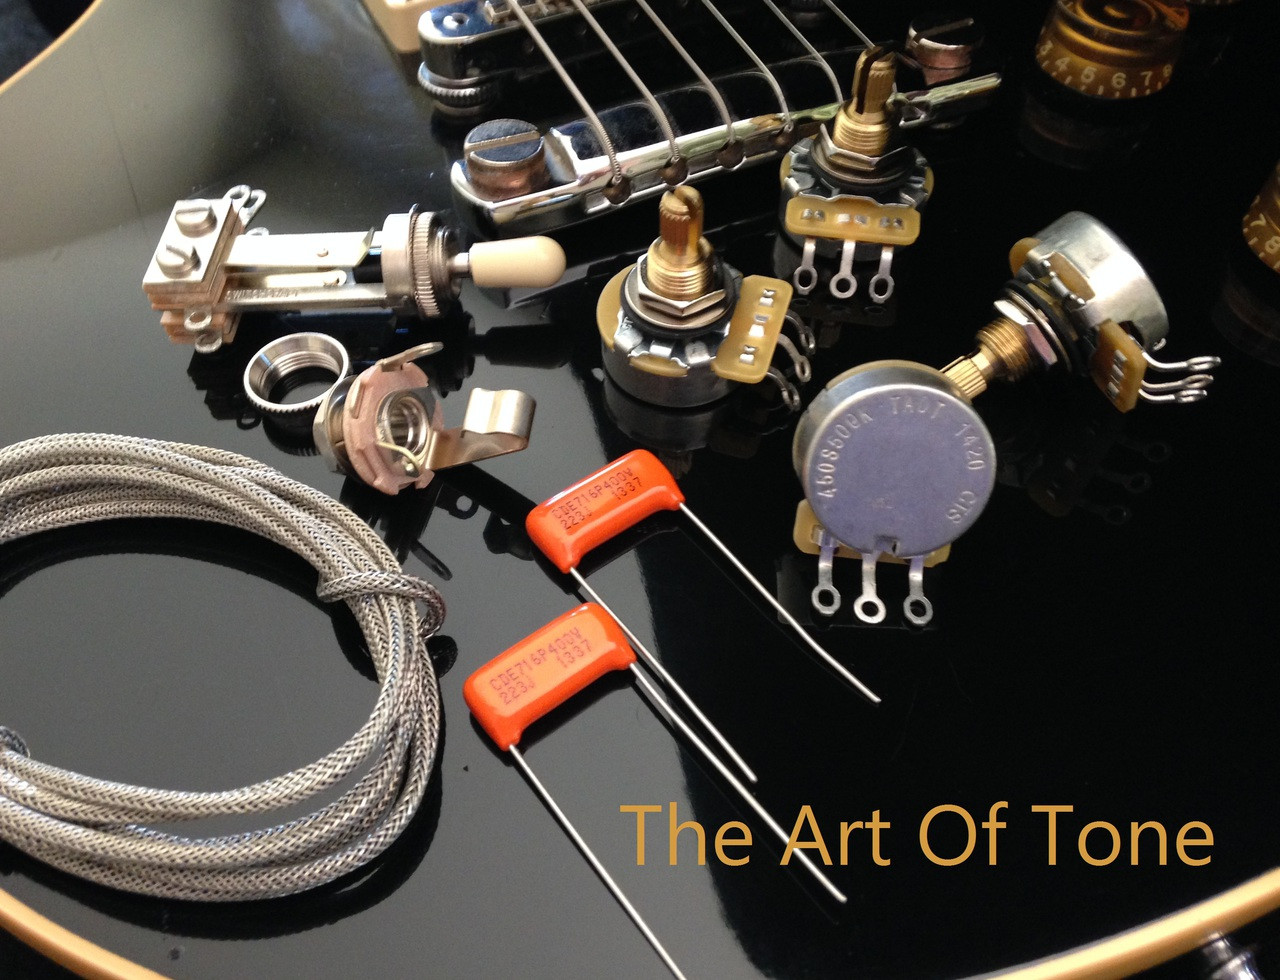 deluxe short shaft wiring kit for gibson usa les paul guitars jackson guitar wiring gibson wiring plate [ 1280 x 980 Pixel ]